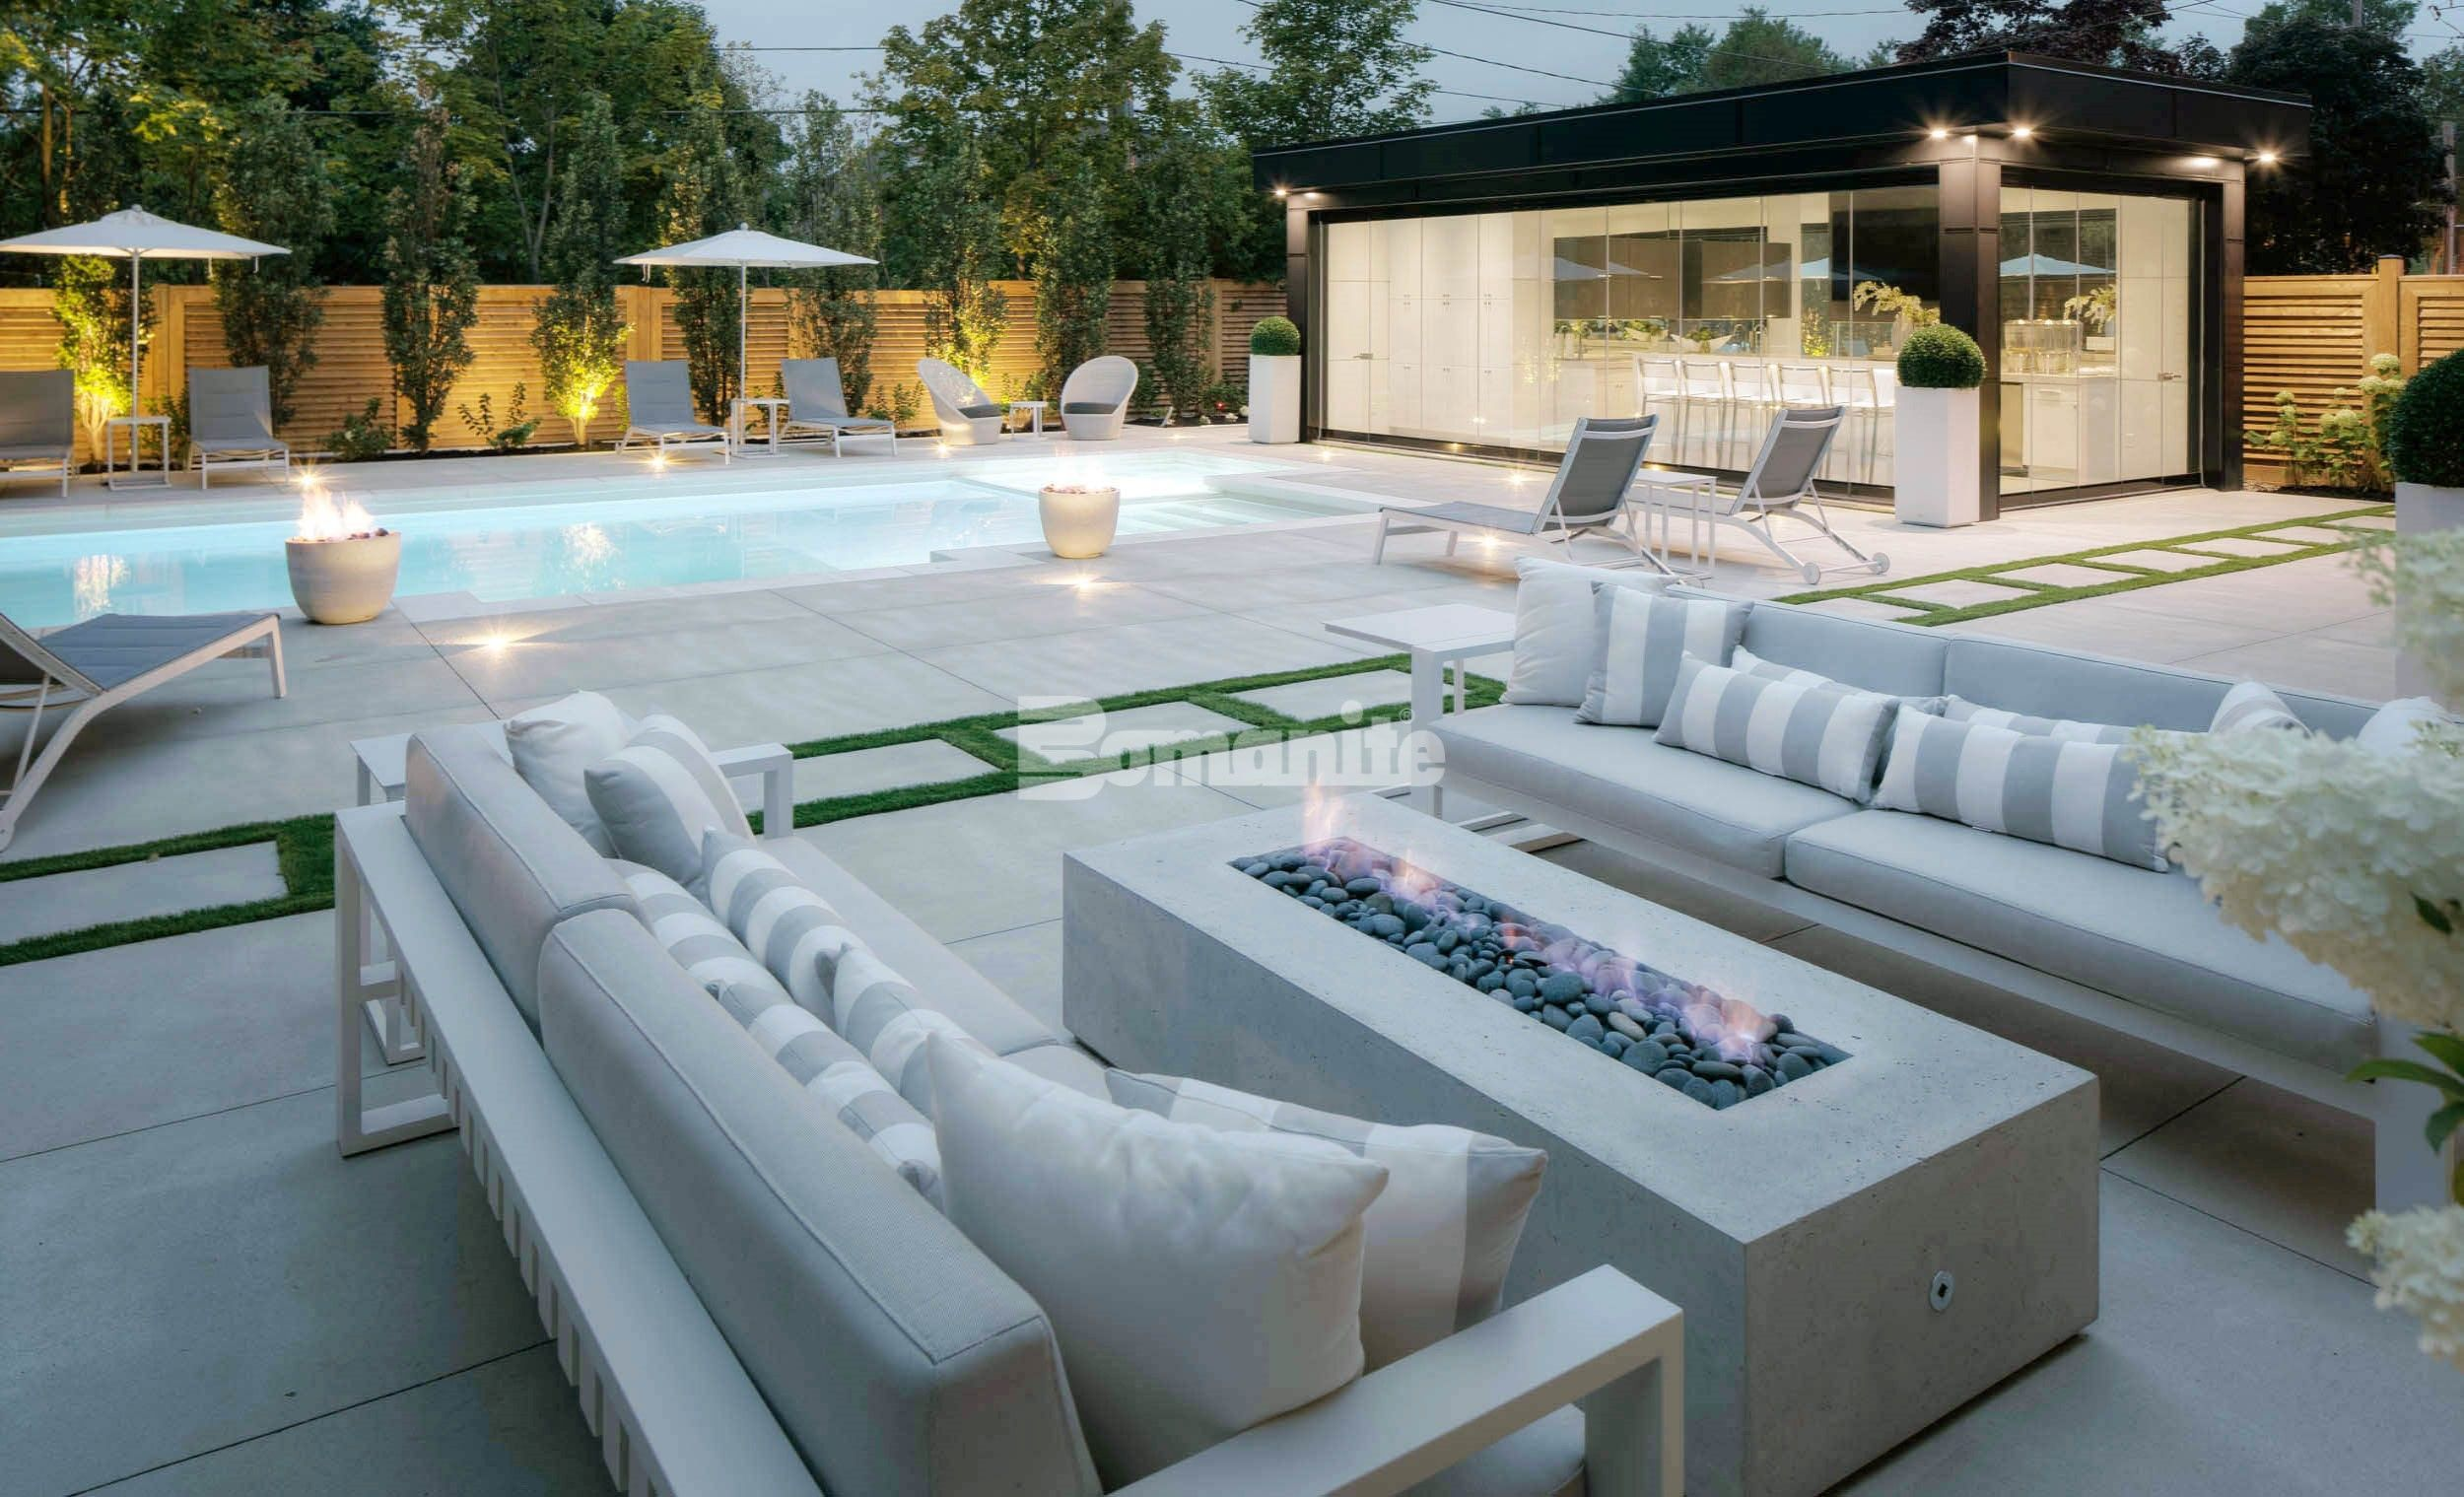 Firepit seating area of an elegant backyard pool deck using the Bomanite Sandscape Refined Exposed Aggregate System with bands of grass installed by Bomanite Toronto in Canada.